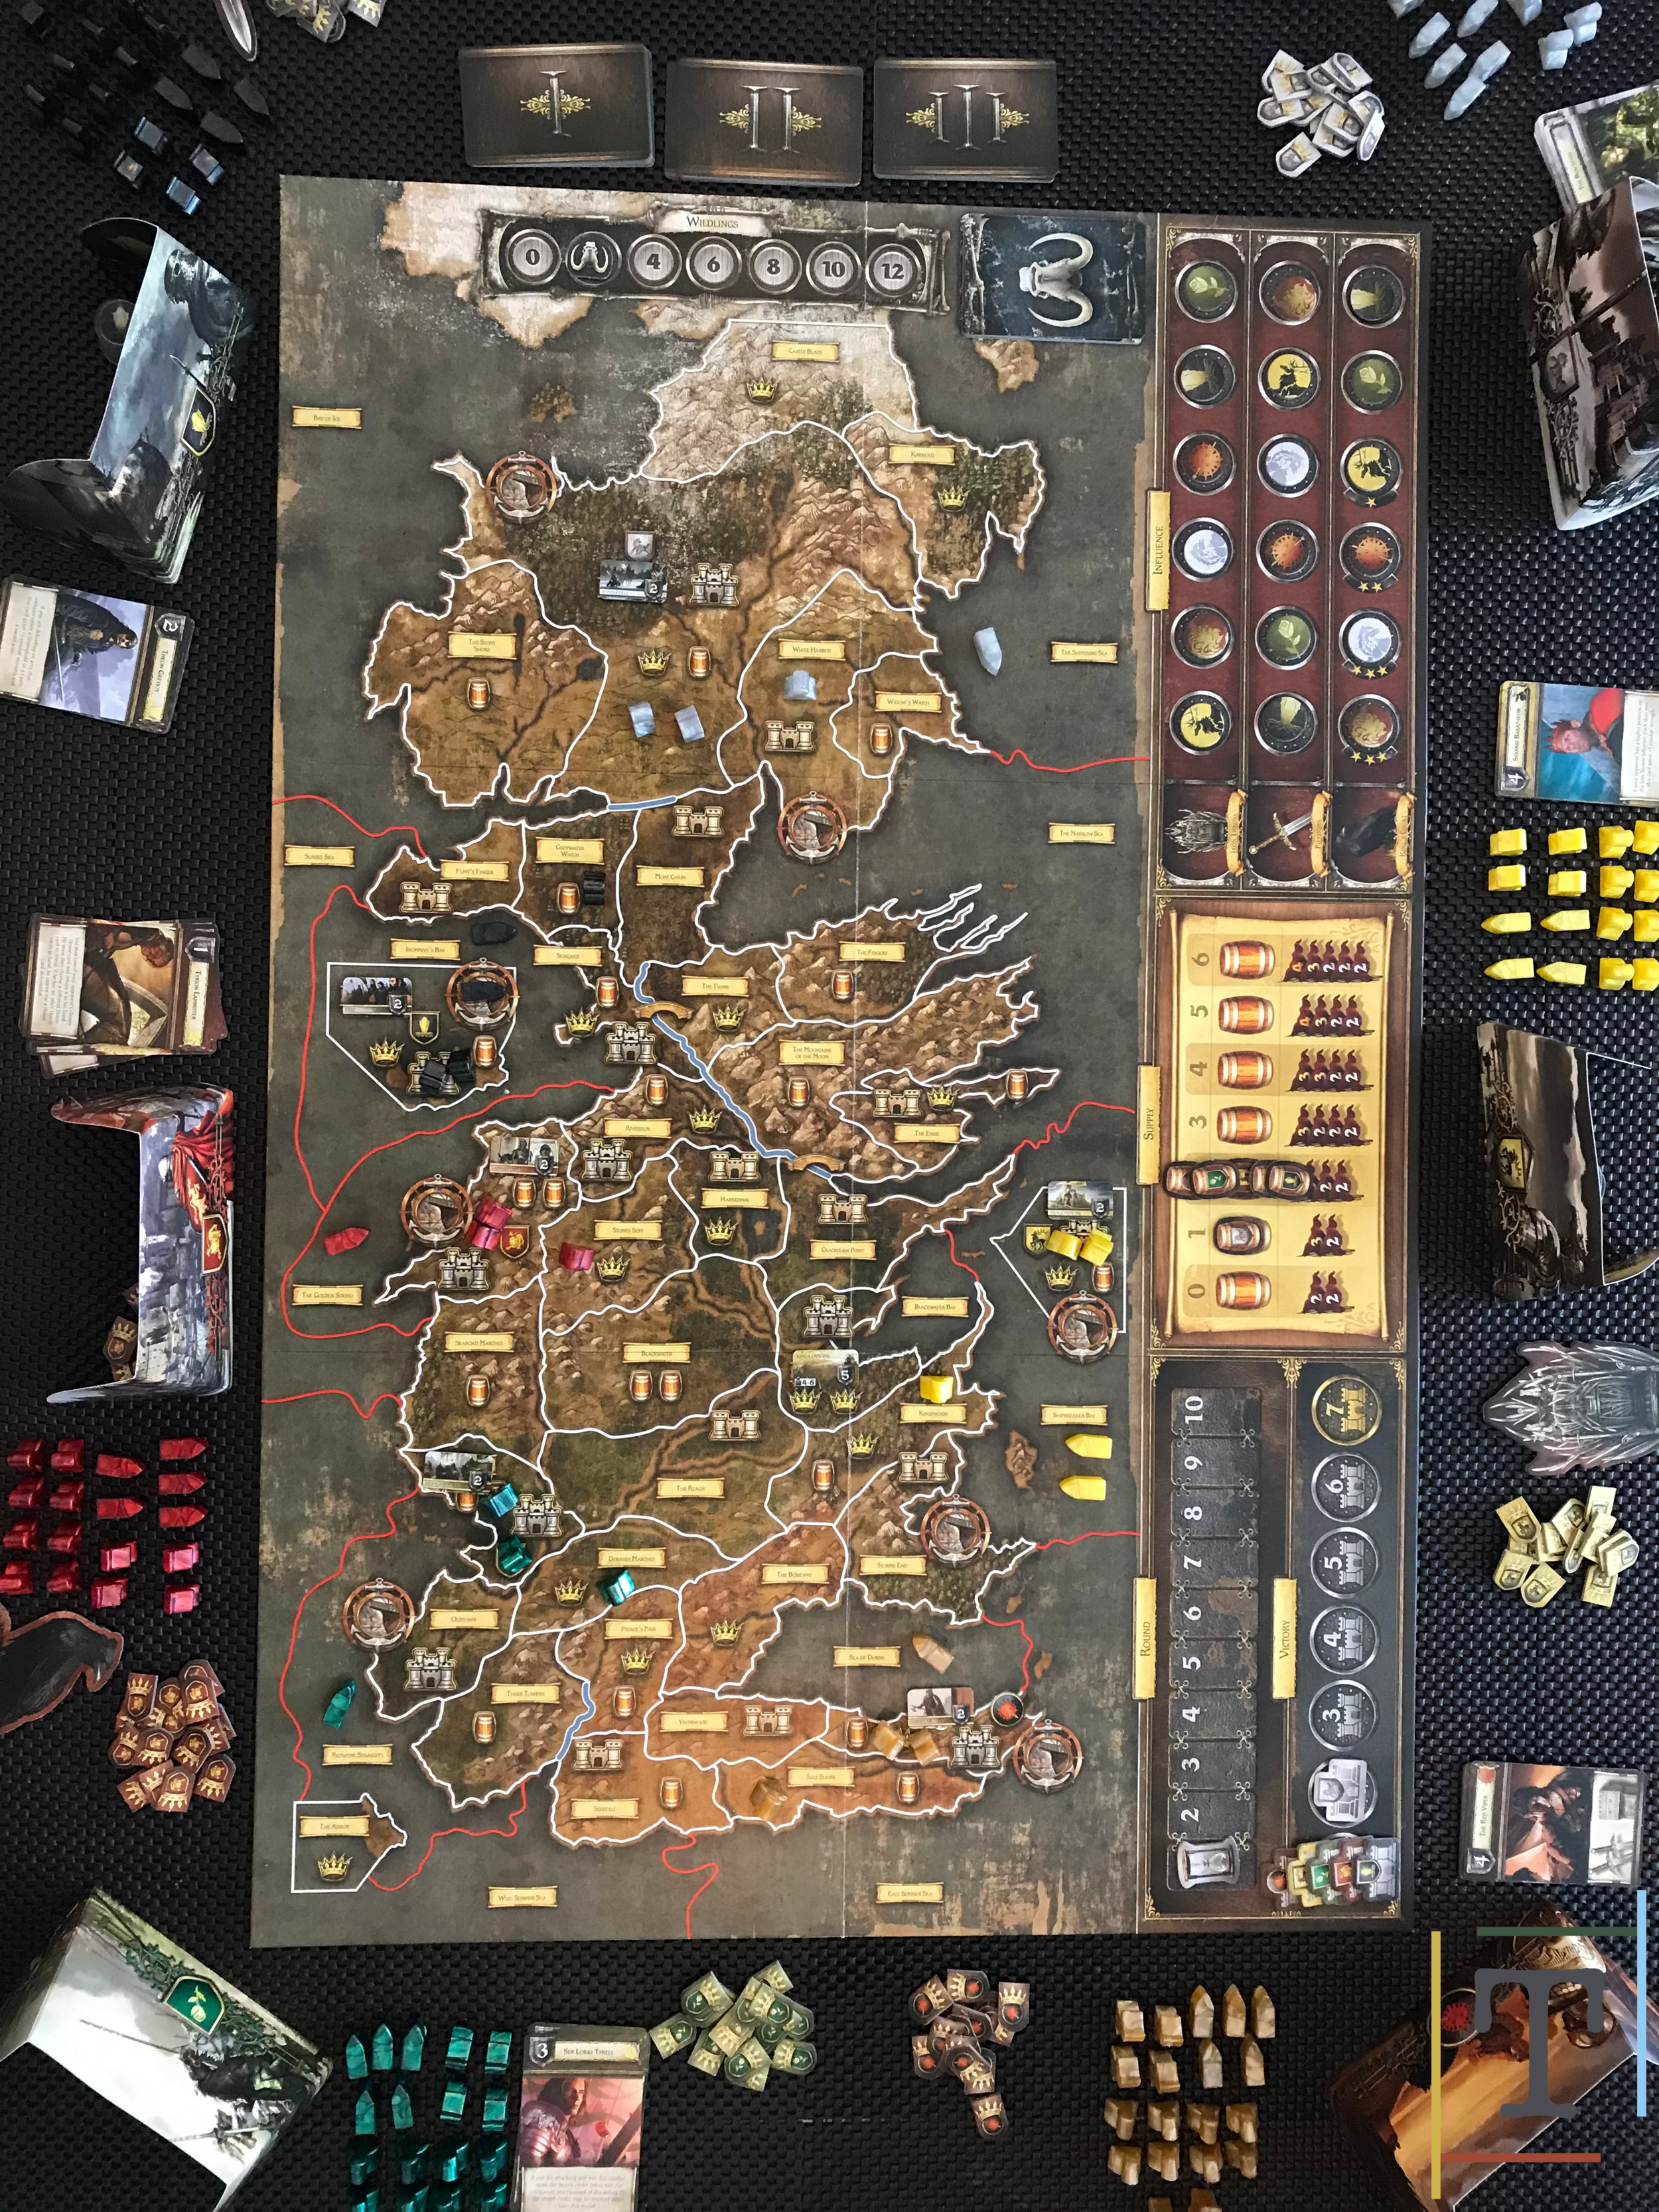 The set-up for a 6 player game